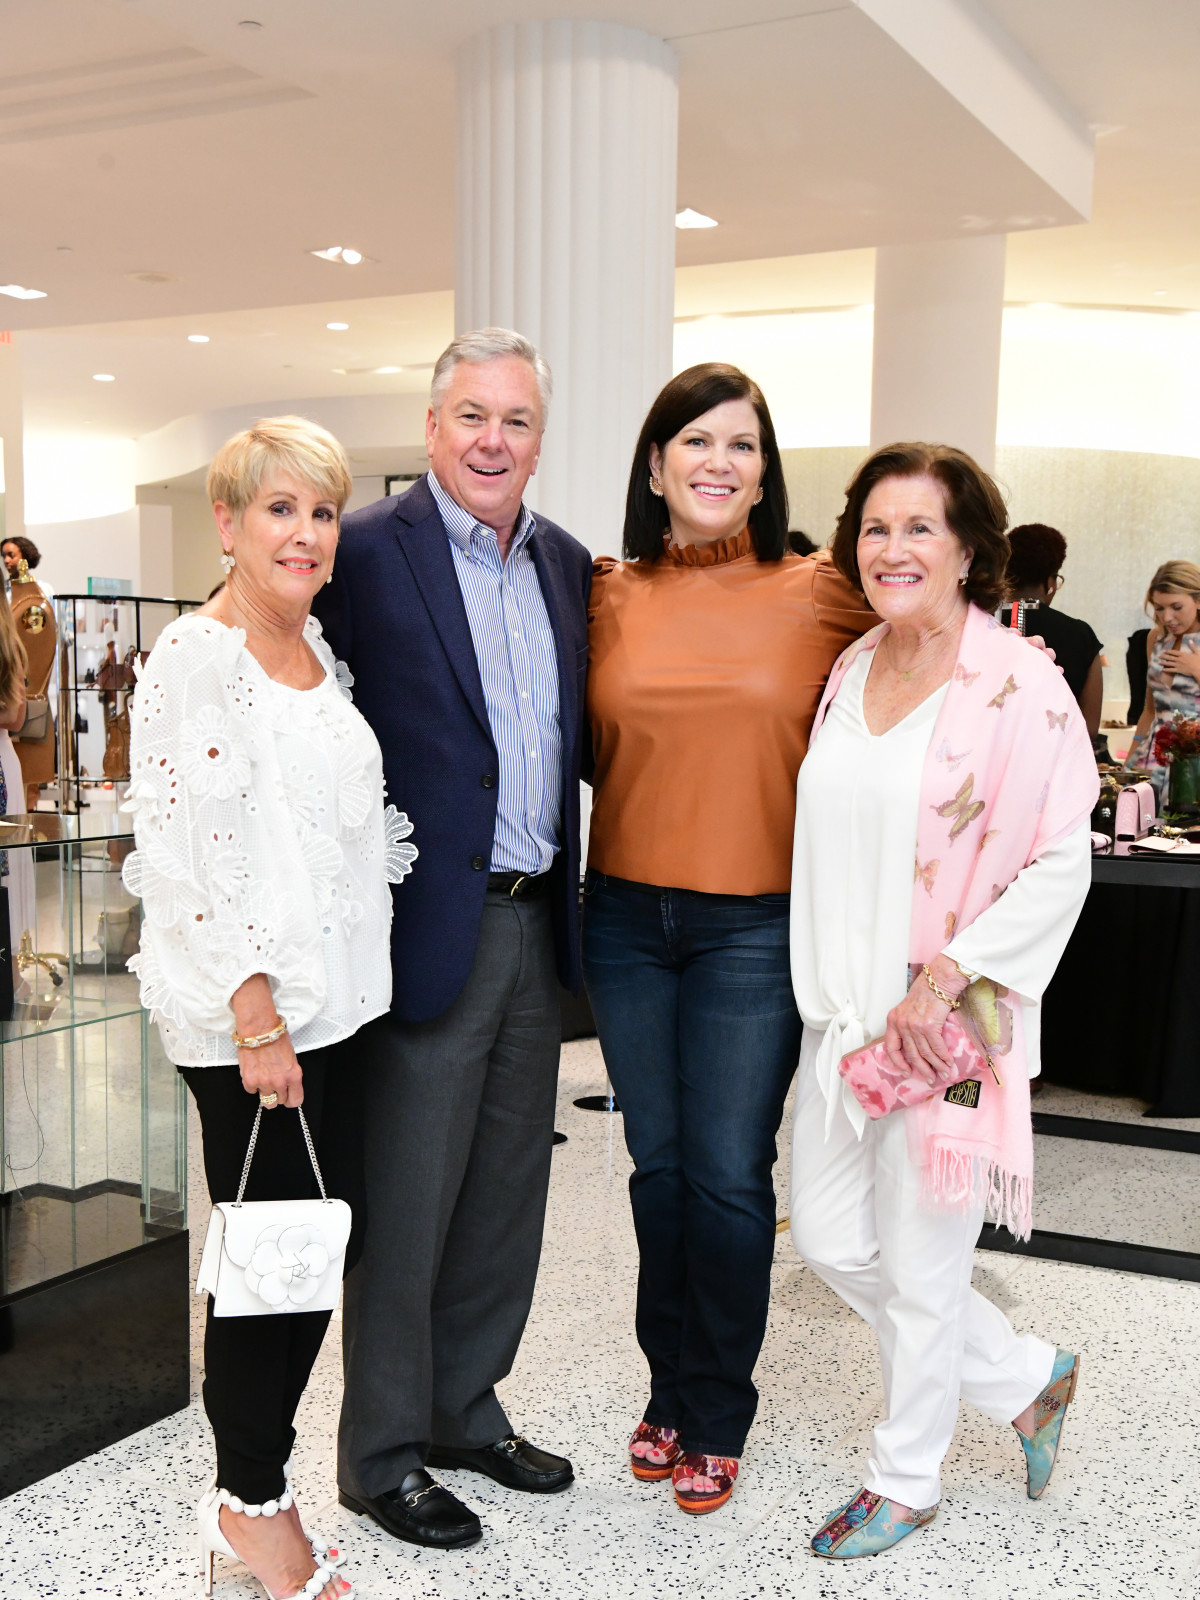 Summer Soiree Dress for Success WOW Tootsies Donna Lewis, Norman Lewis, Lauren Levicki Courville, Nancy Levicki